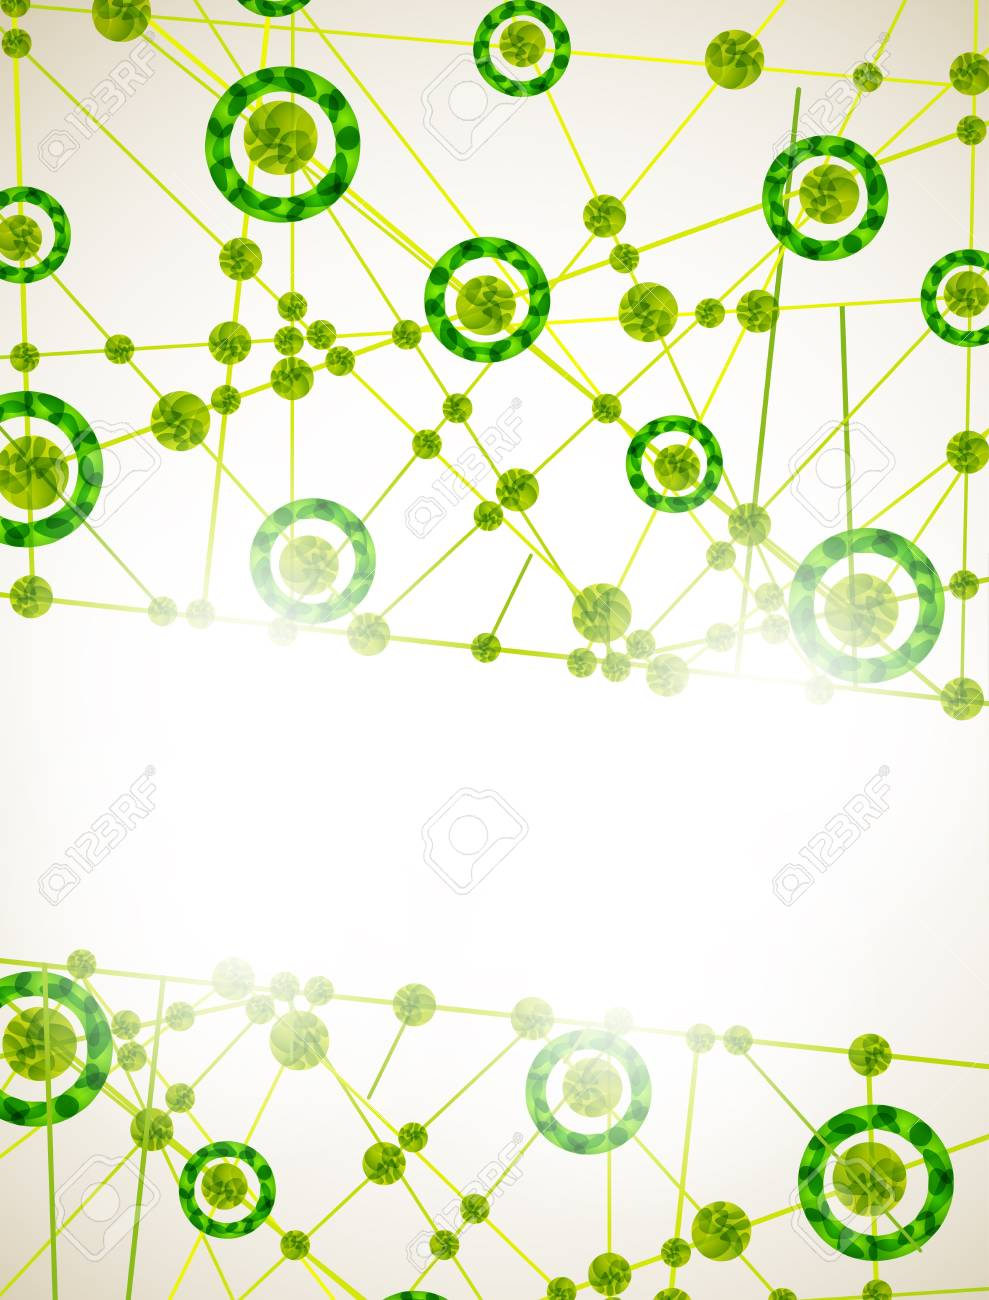 molecular structure, abstract background Stock Vector - 15707295